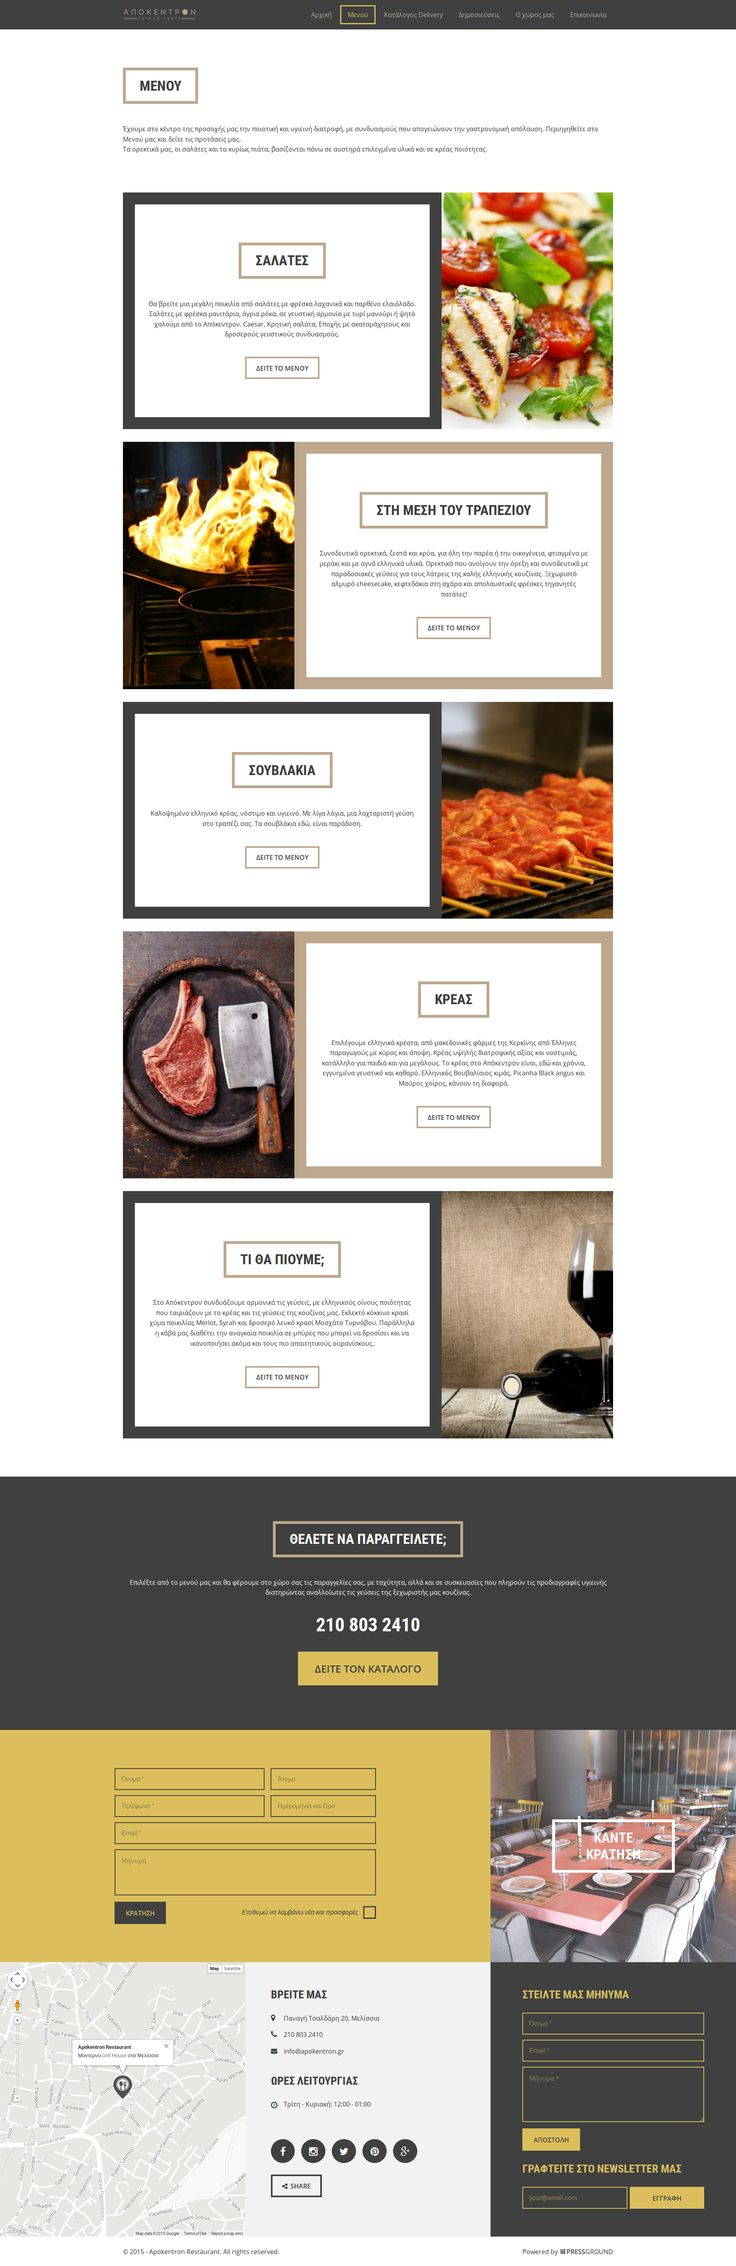 Apokentron is a new age Grill House in Athens, Greece, with a history that counts more than 17 years. The Hardpixel Team designed and developed its new responsive website.  - The Menu Webpage -